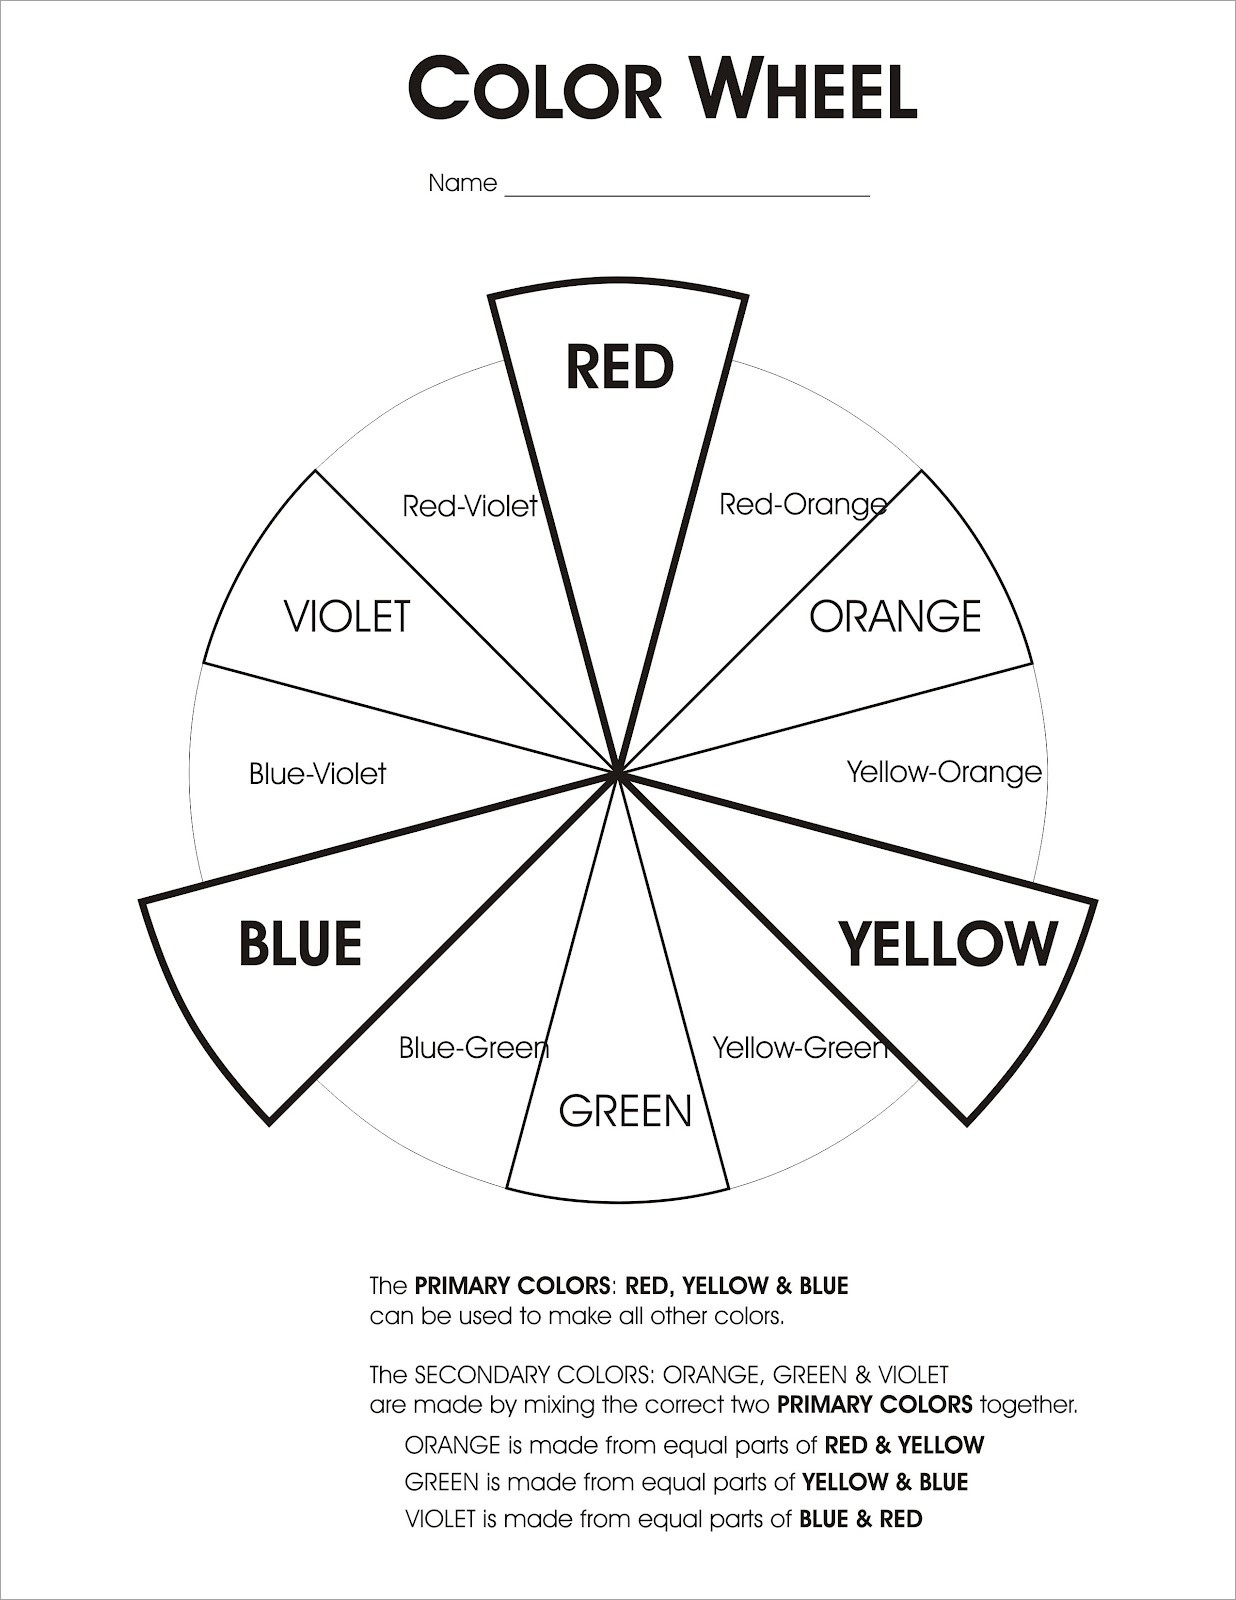 Color Wheel Worksheets Printable Printable Color Wheel Worksheet that are Delicate